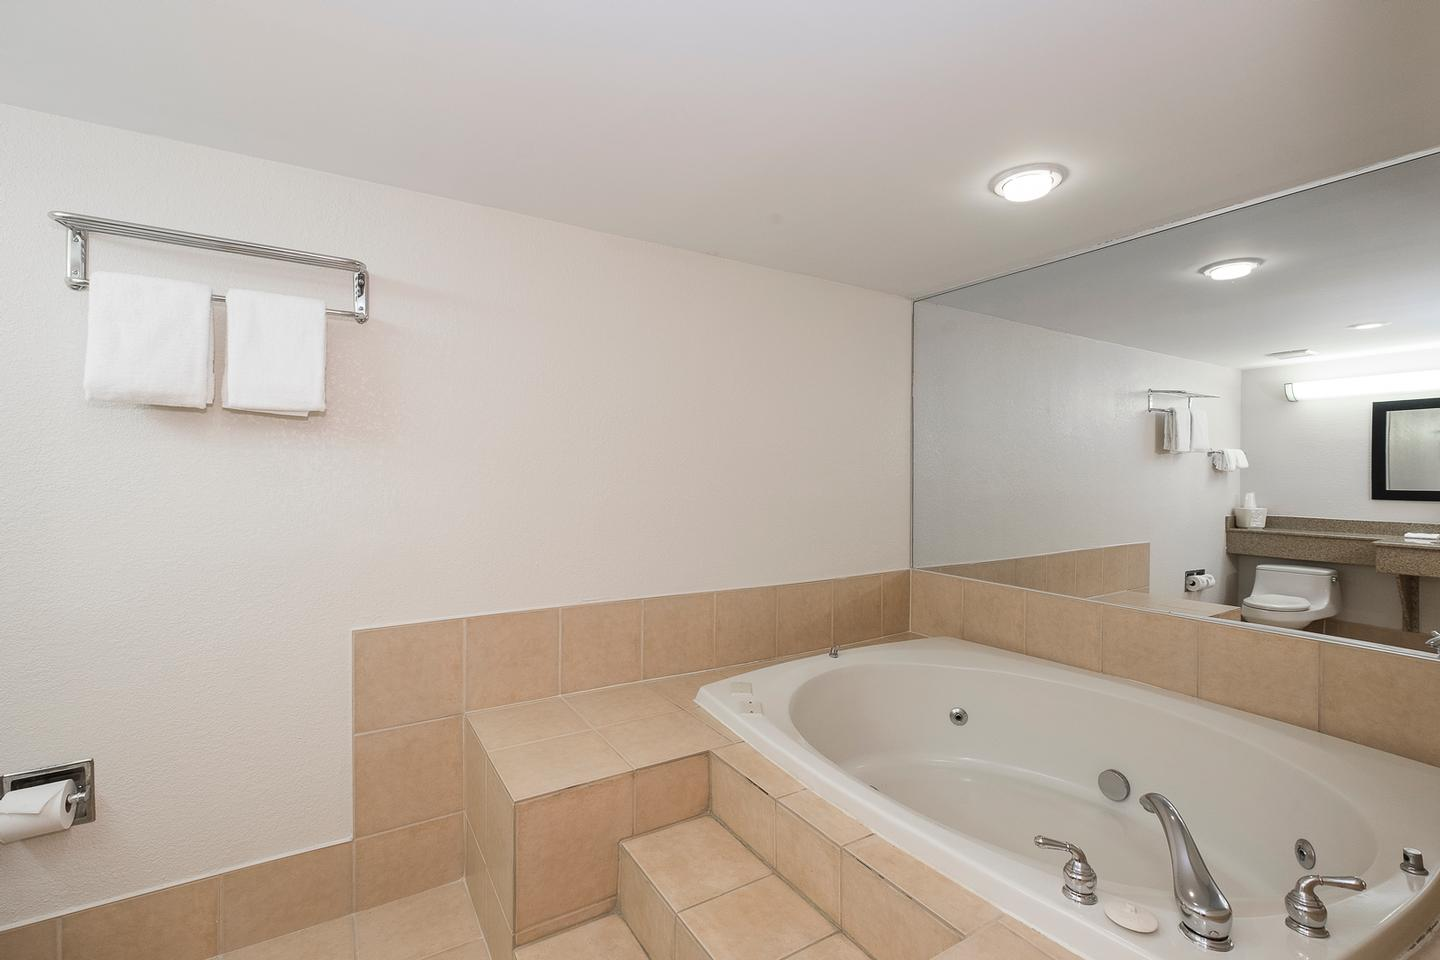 Jacuzzi In Select King Rooms 4 of 16